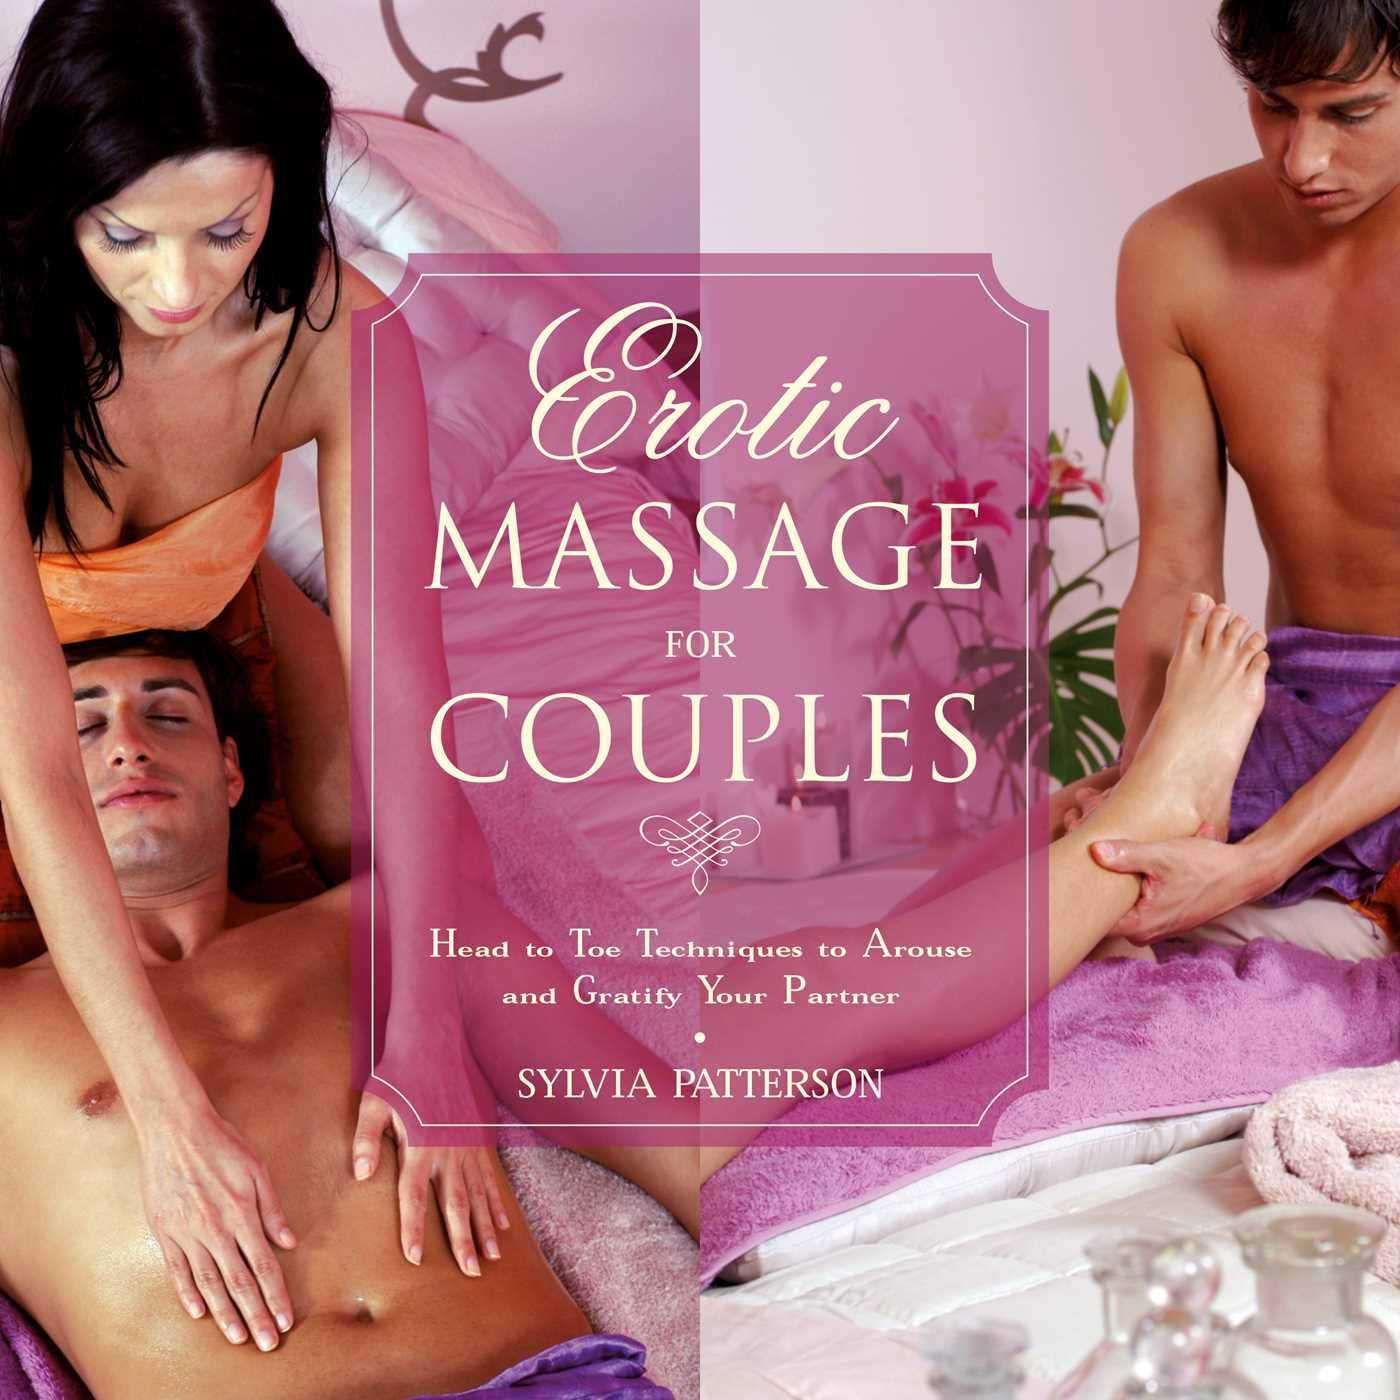 Erotic Massage for Couples: Head to Toe Techniques to Arouse and Gratify Your Partner por Sylvia Patterson